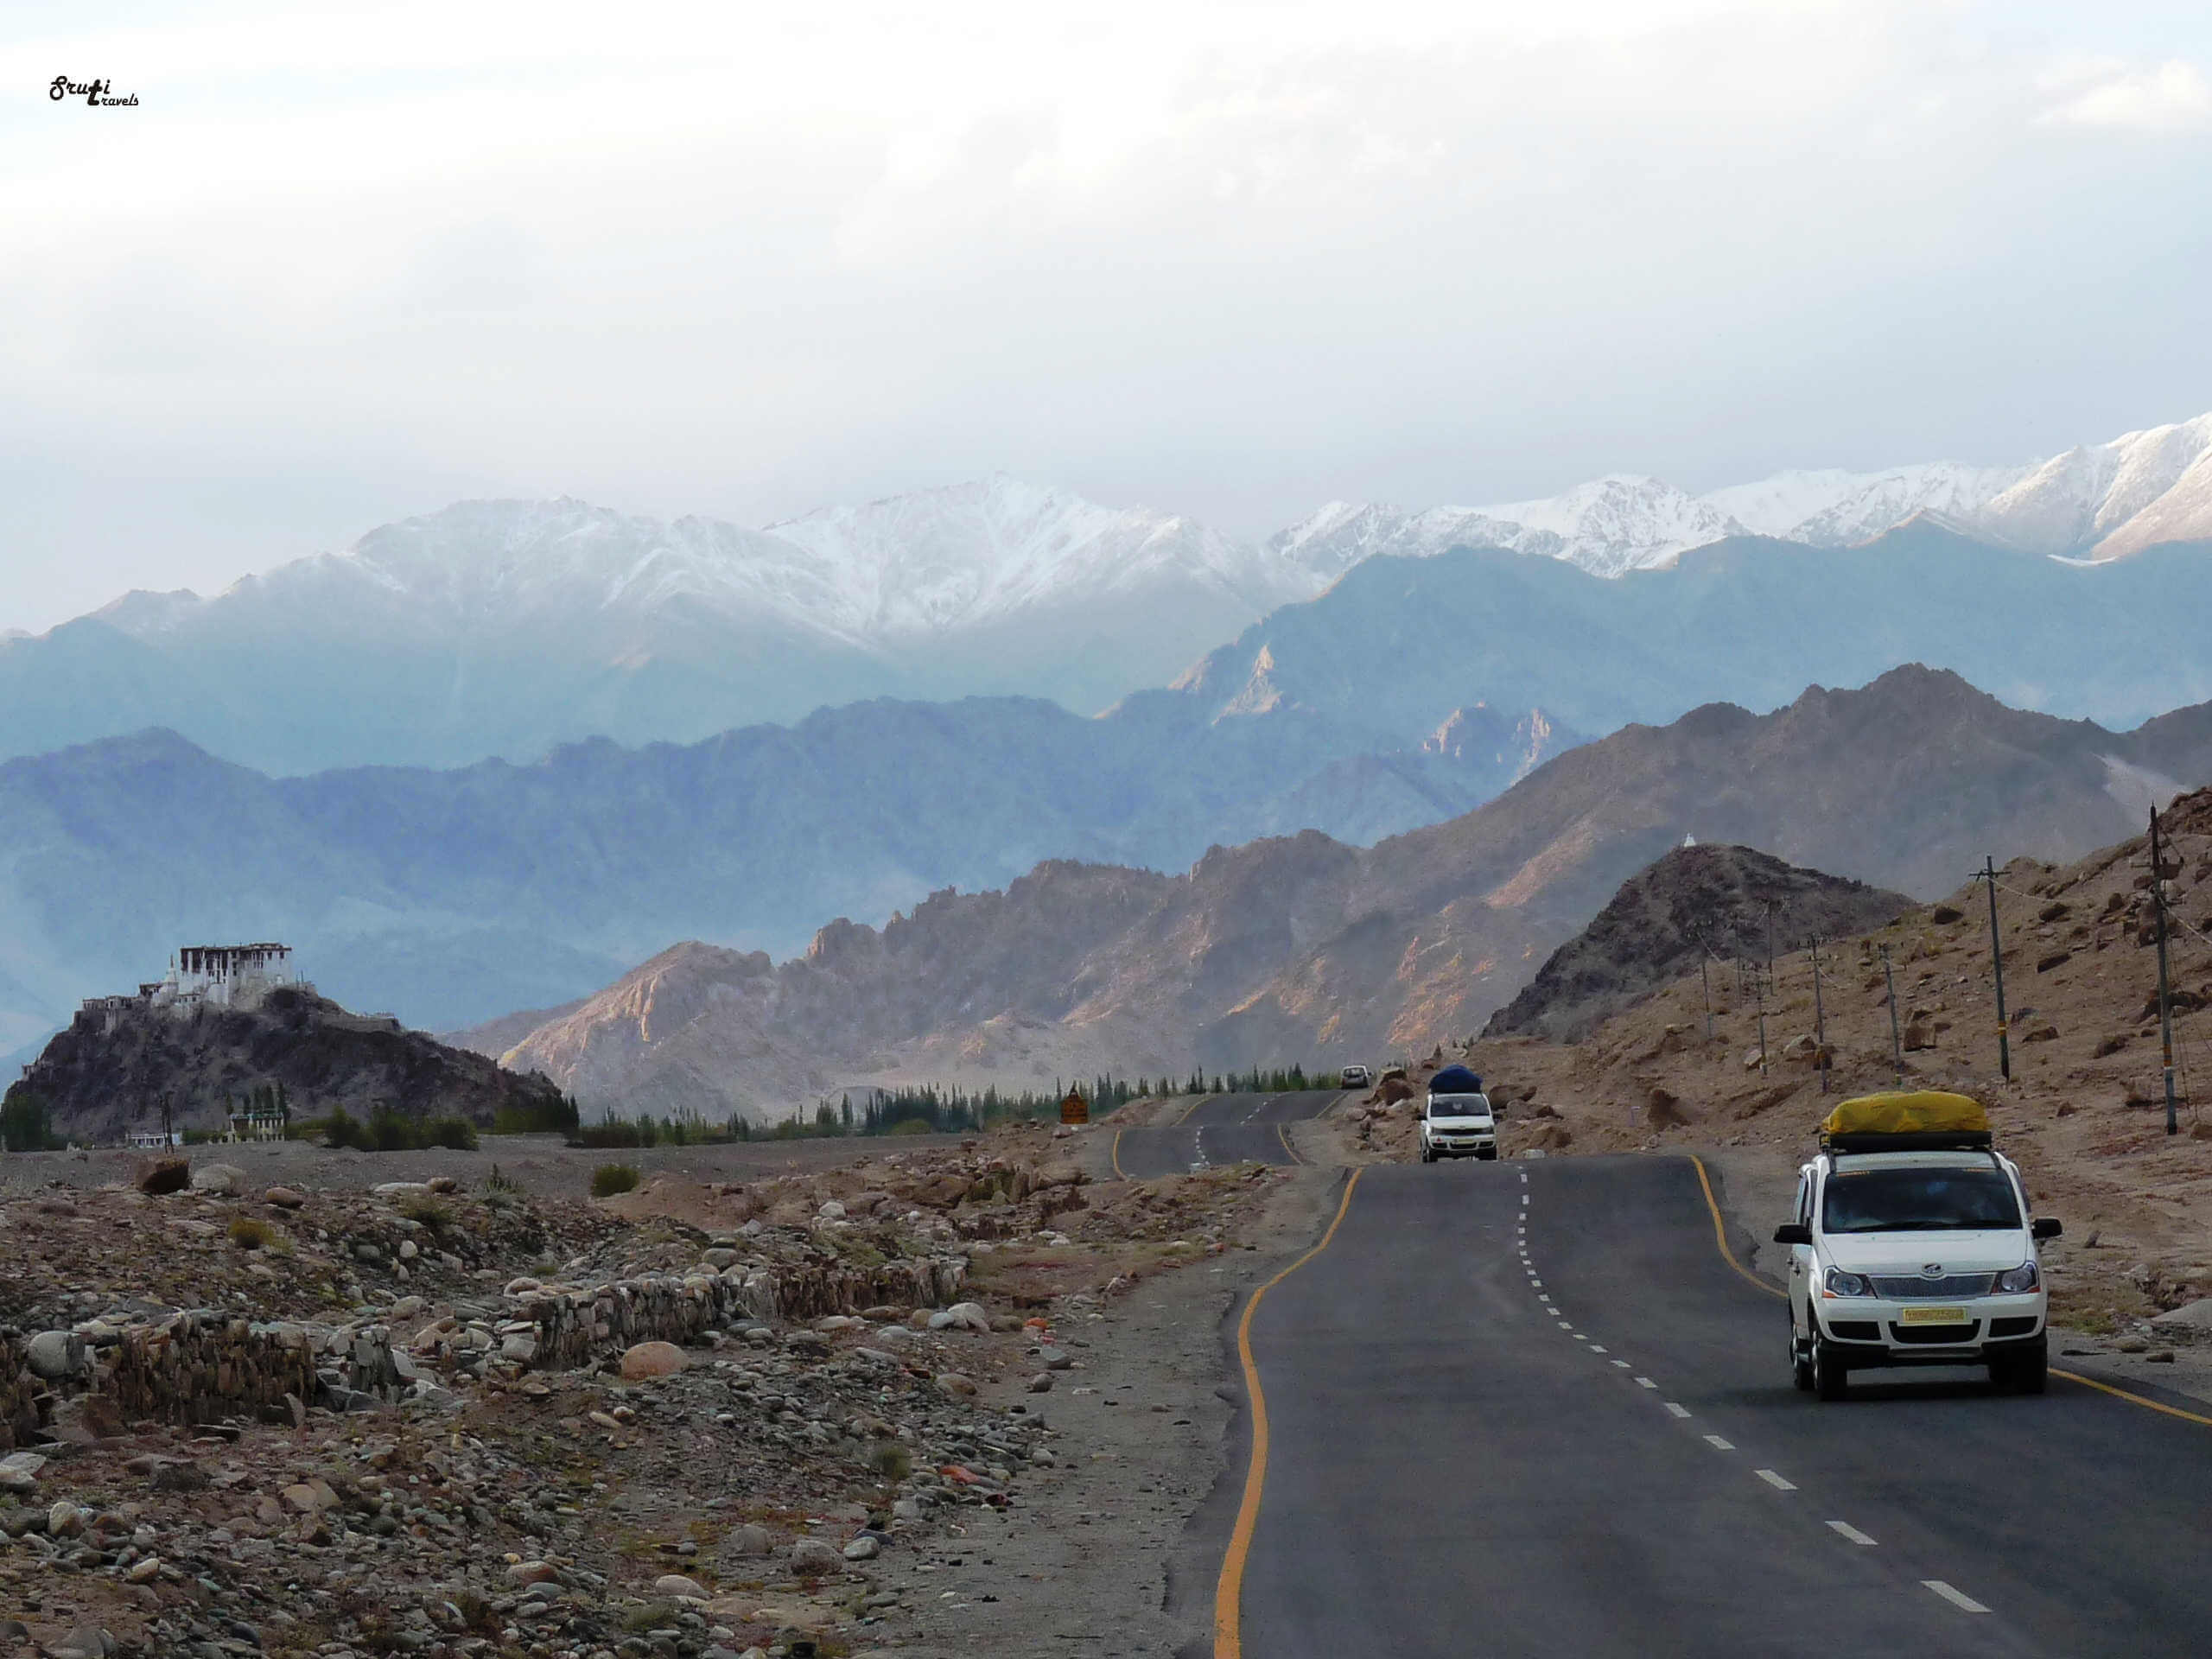 Leh Taxi Rates 2019 - BOOK YOUR TAXI - Sruti Travels